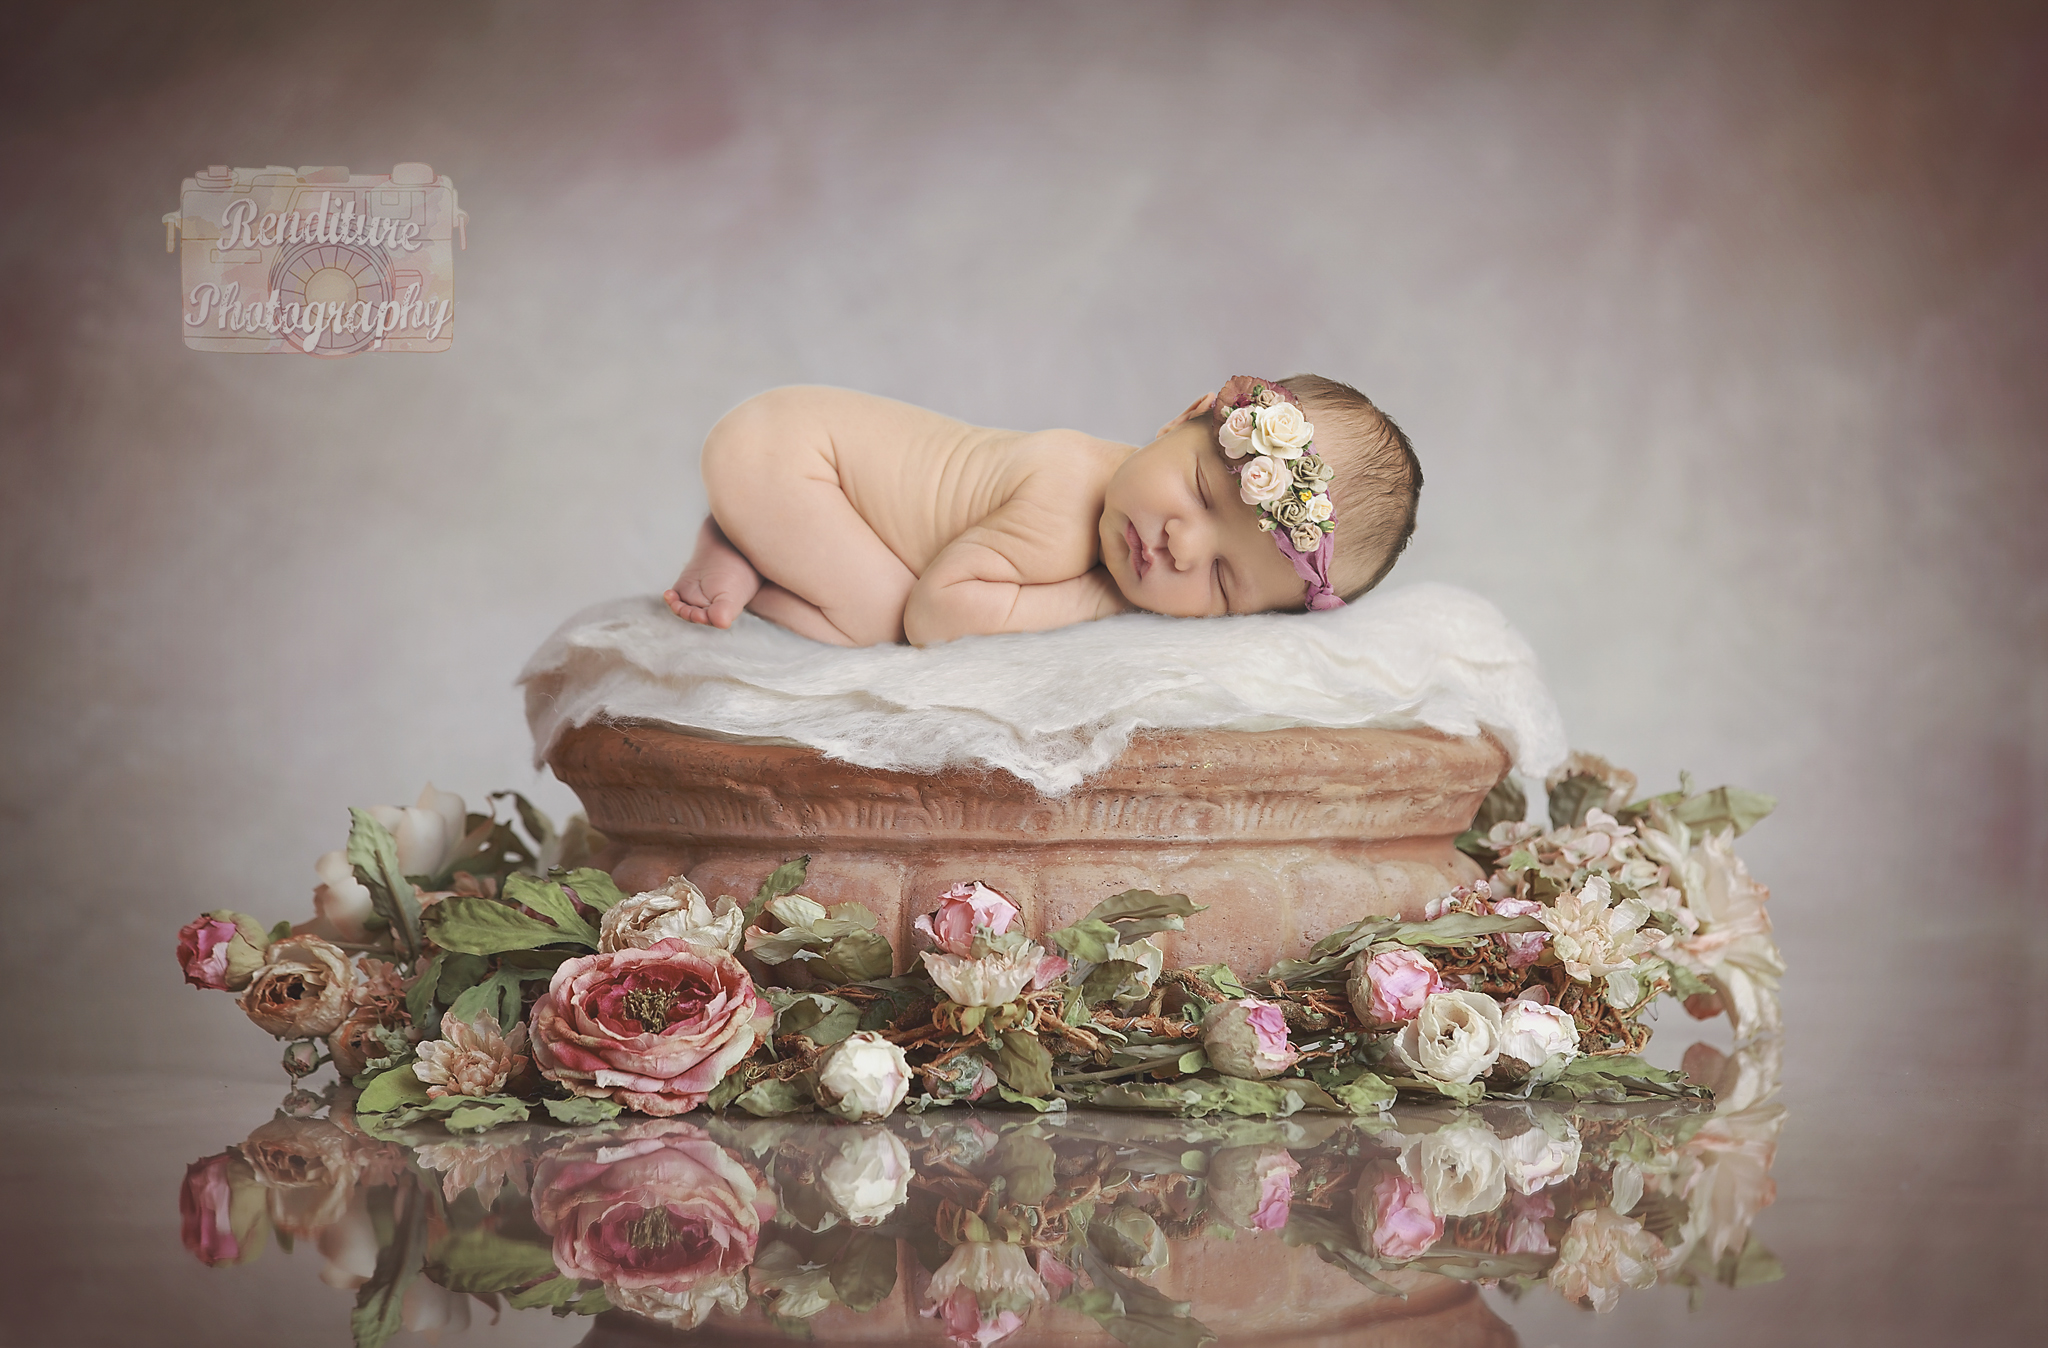 Saskatoon-Newborn-Family-Renditure-Baby-Photography-Photographer-Maternity-Pregnancy-Saskatchewan-421 FBR.jpg